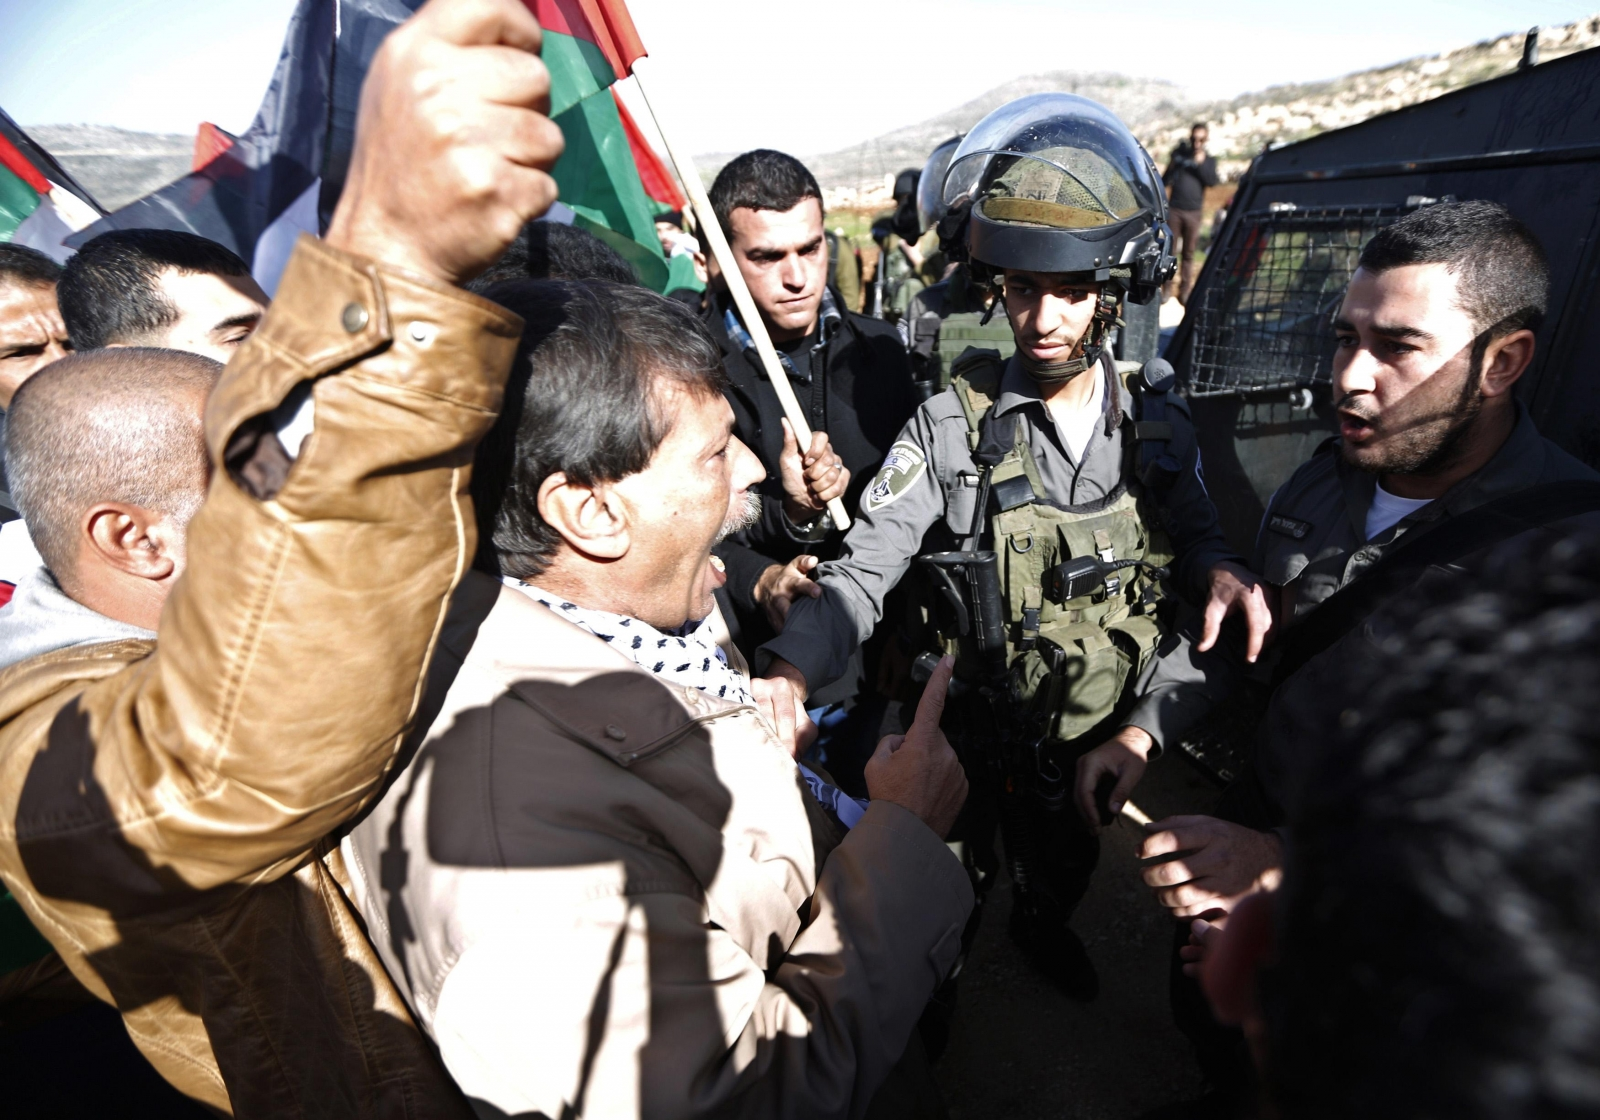 Palestinian minister killed by Israeli forces after West Bank protests